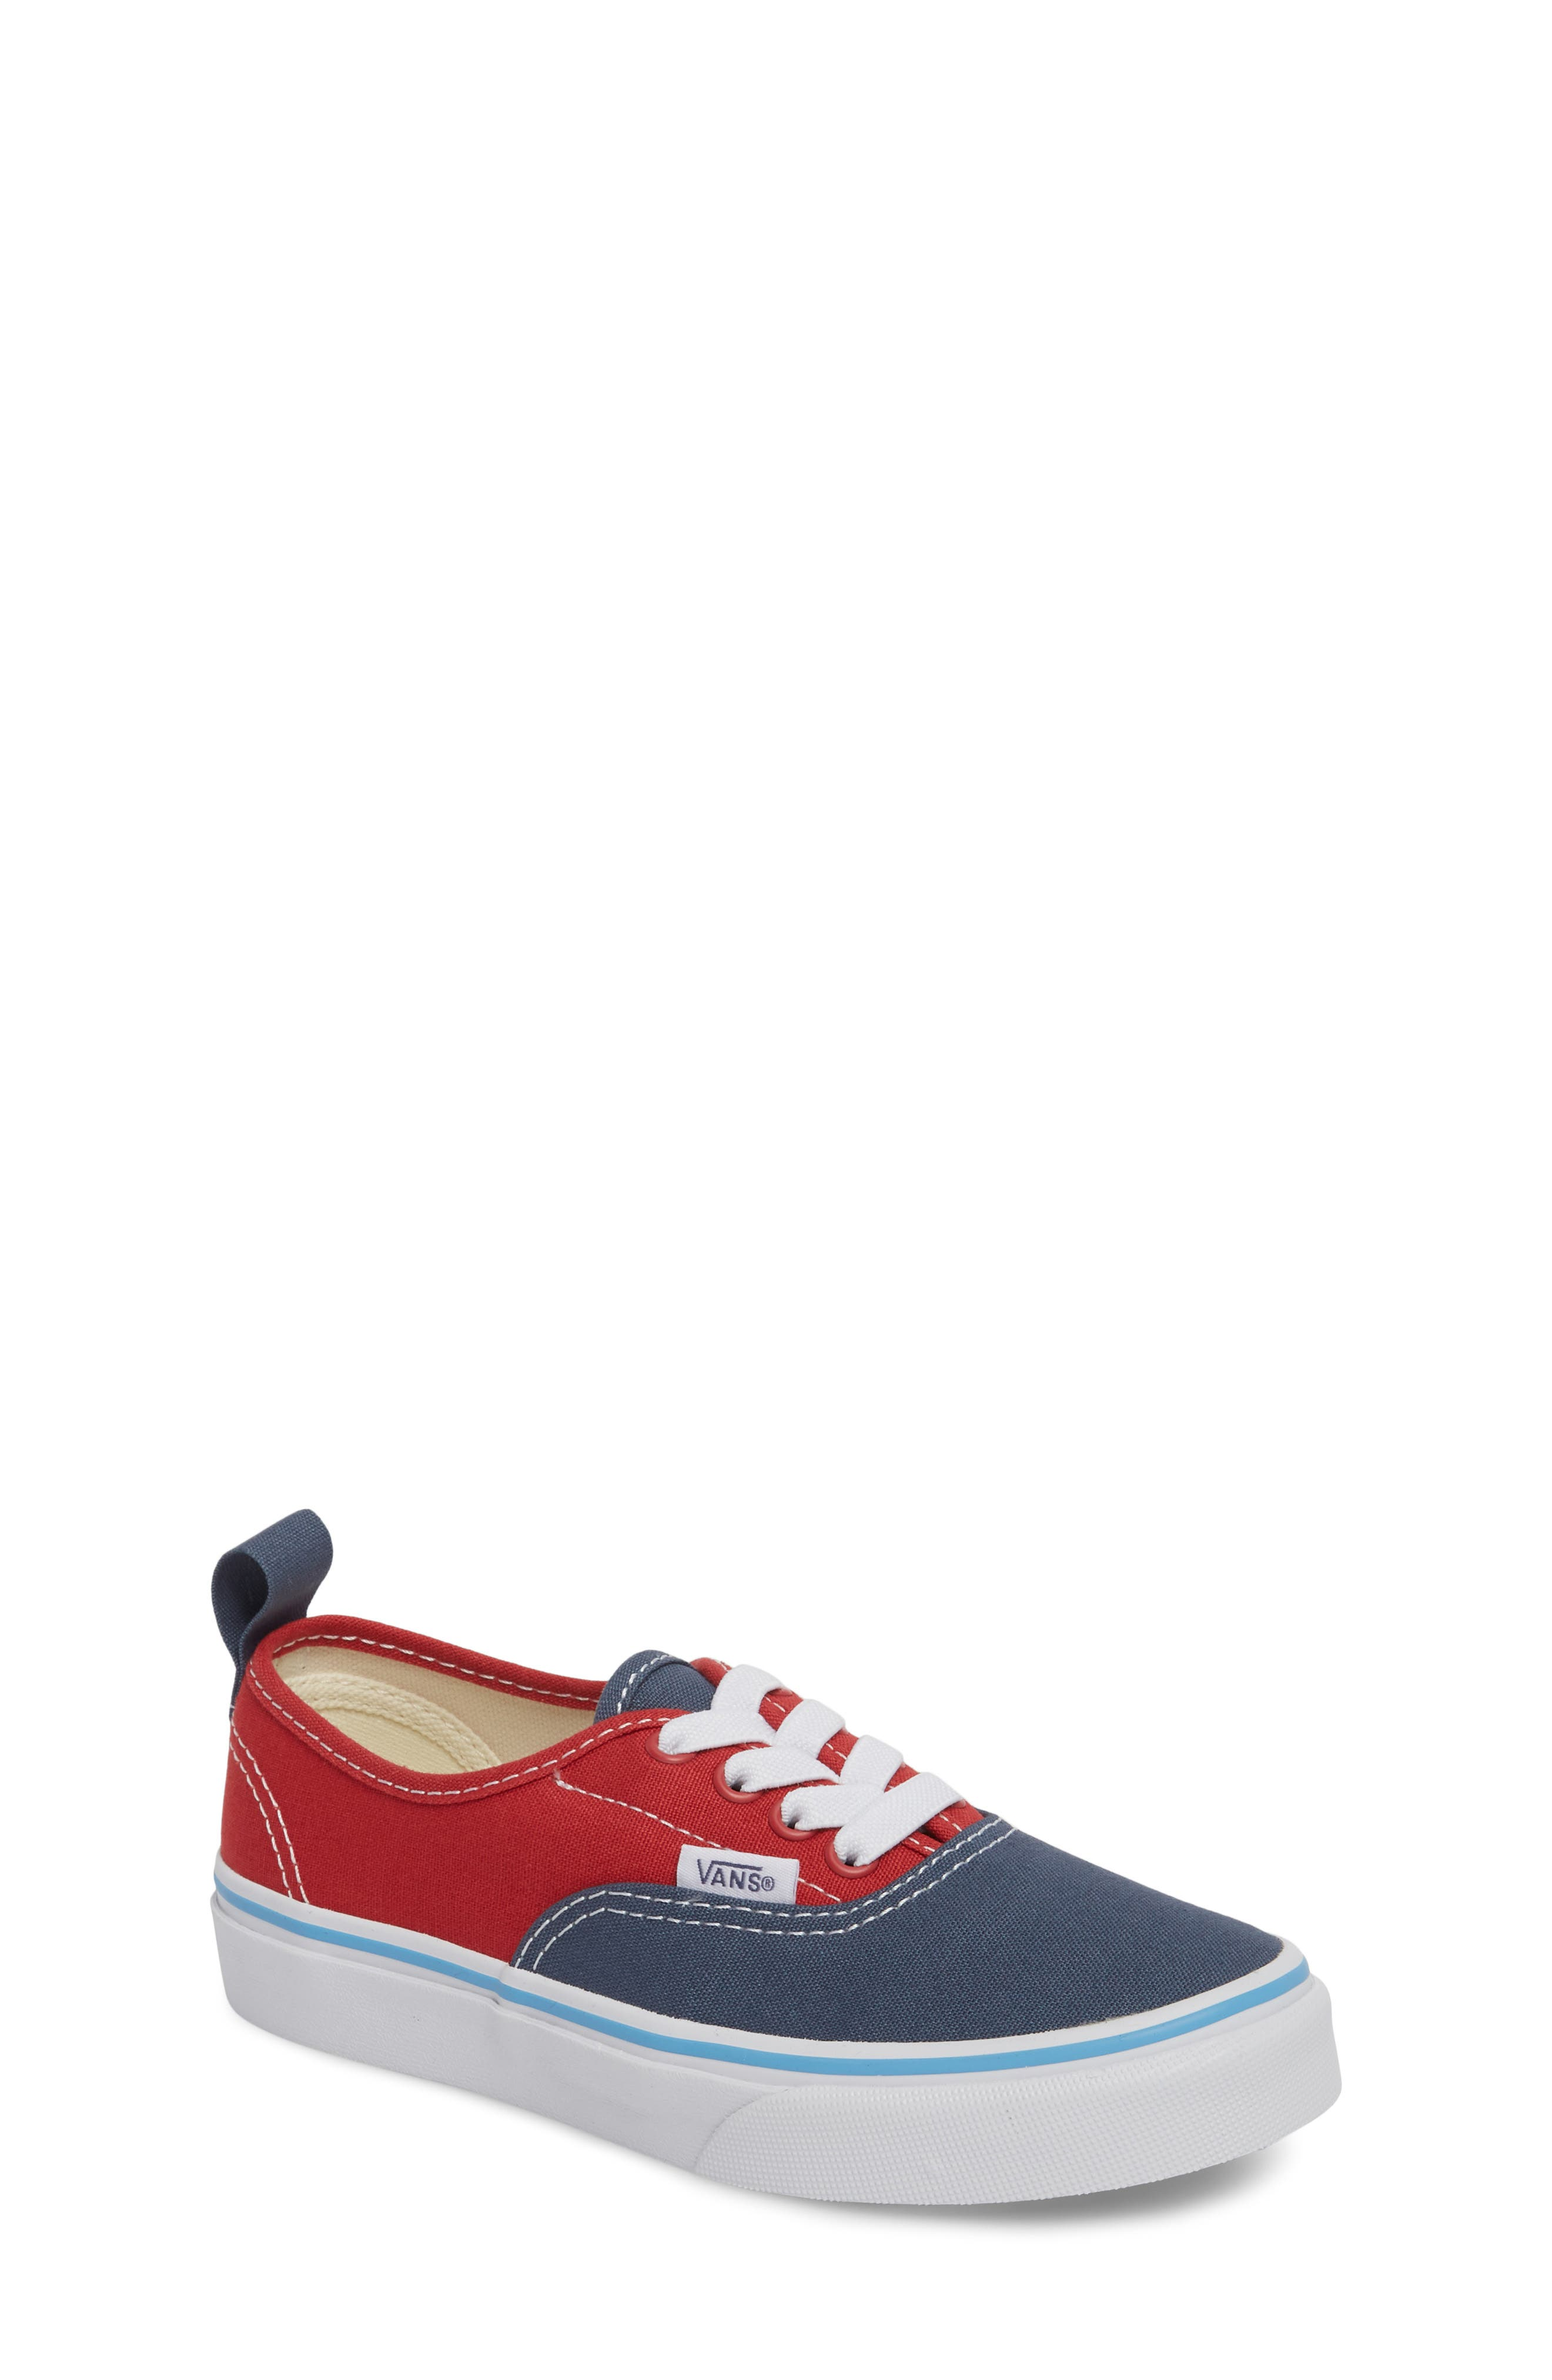 Authentic Low Top Sneaker,                         Main,                         color, Indigo/ Blue/ Red Tri Pop